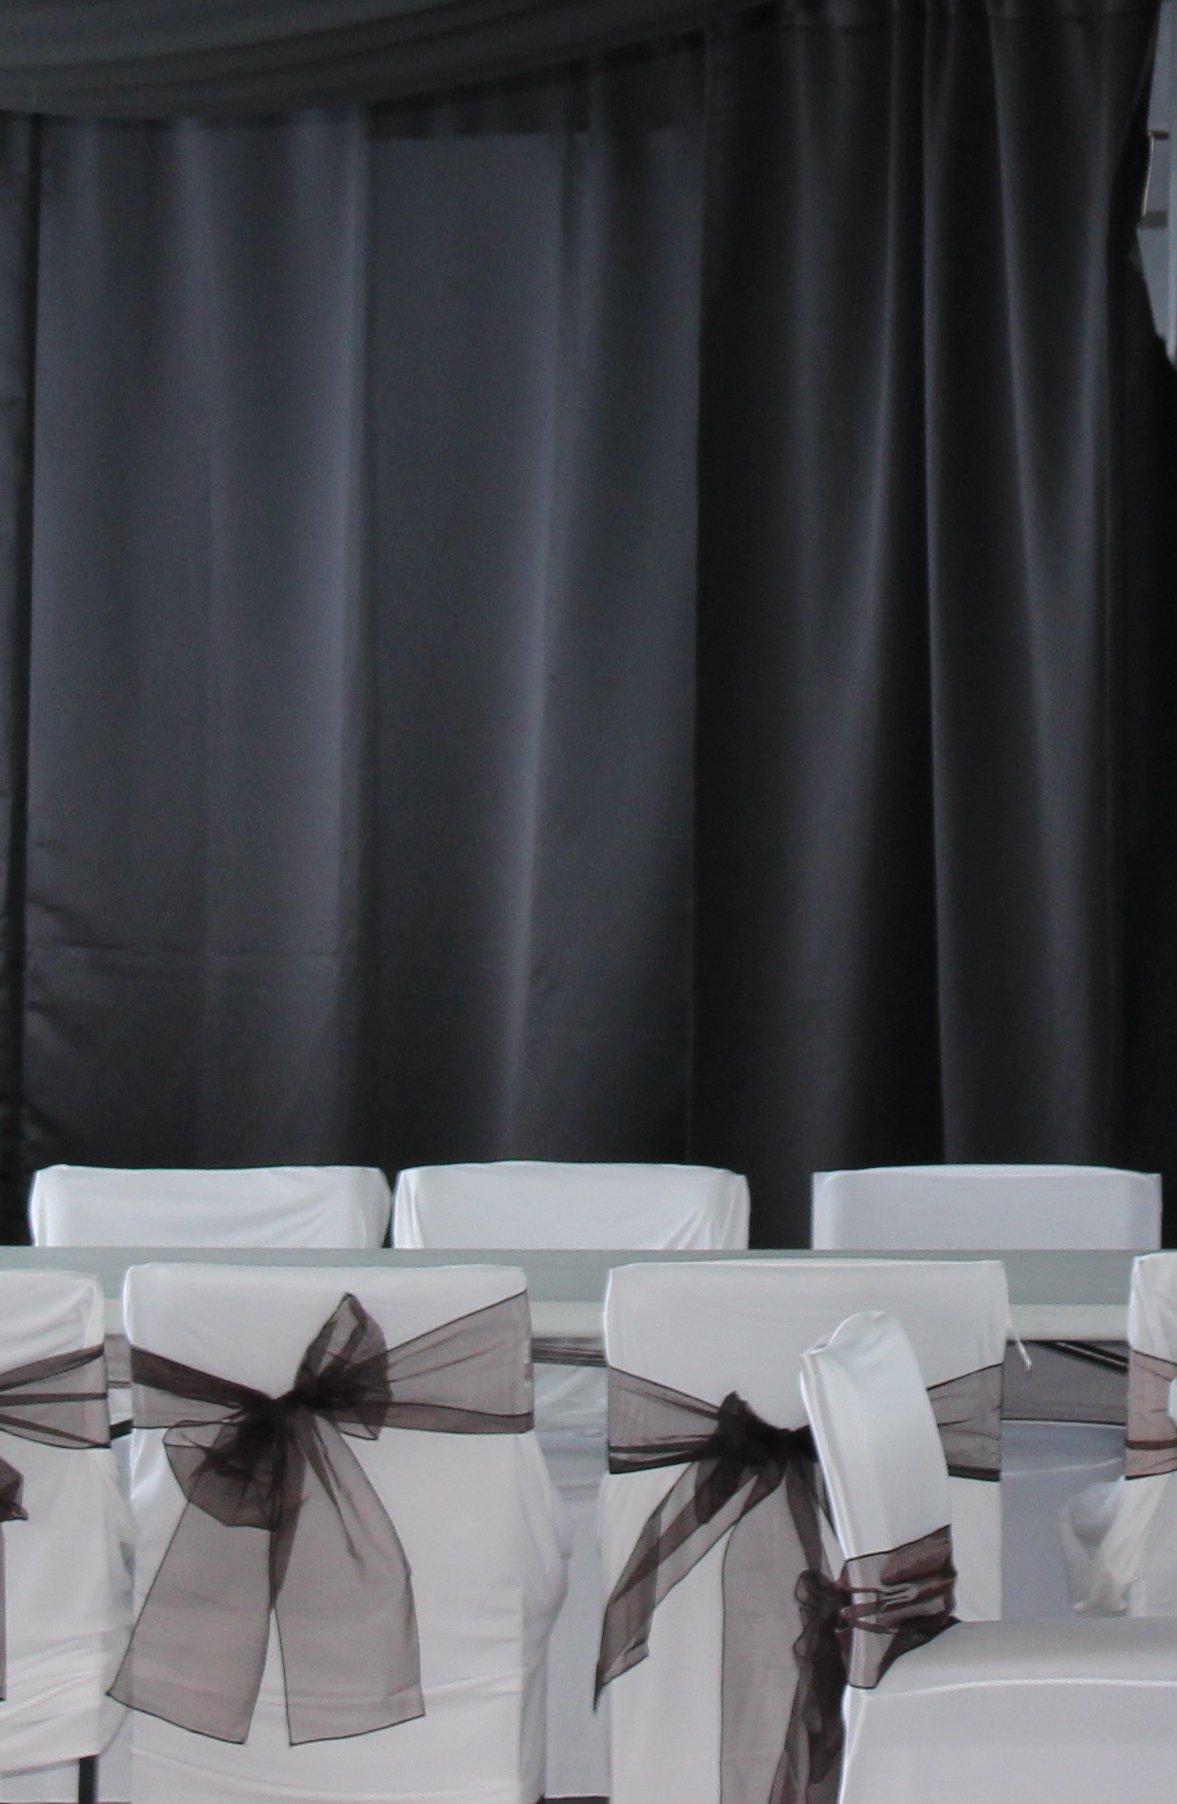 Black Satin wall draping 3m wideHire price from $30 Incl frames & gst